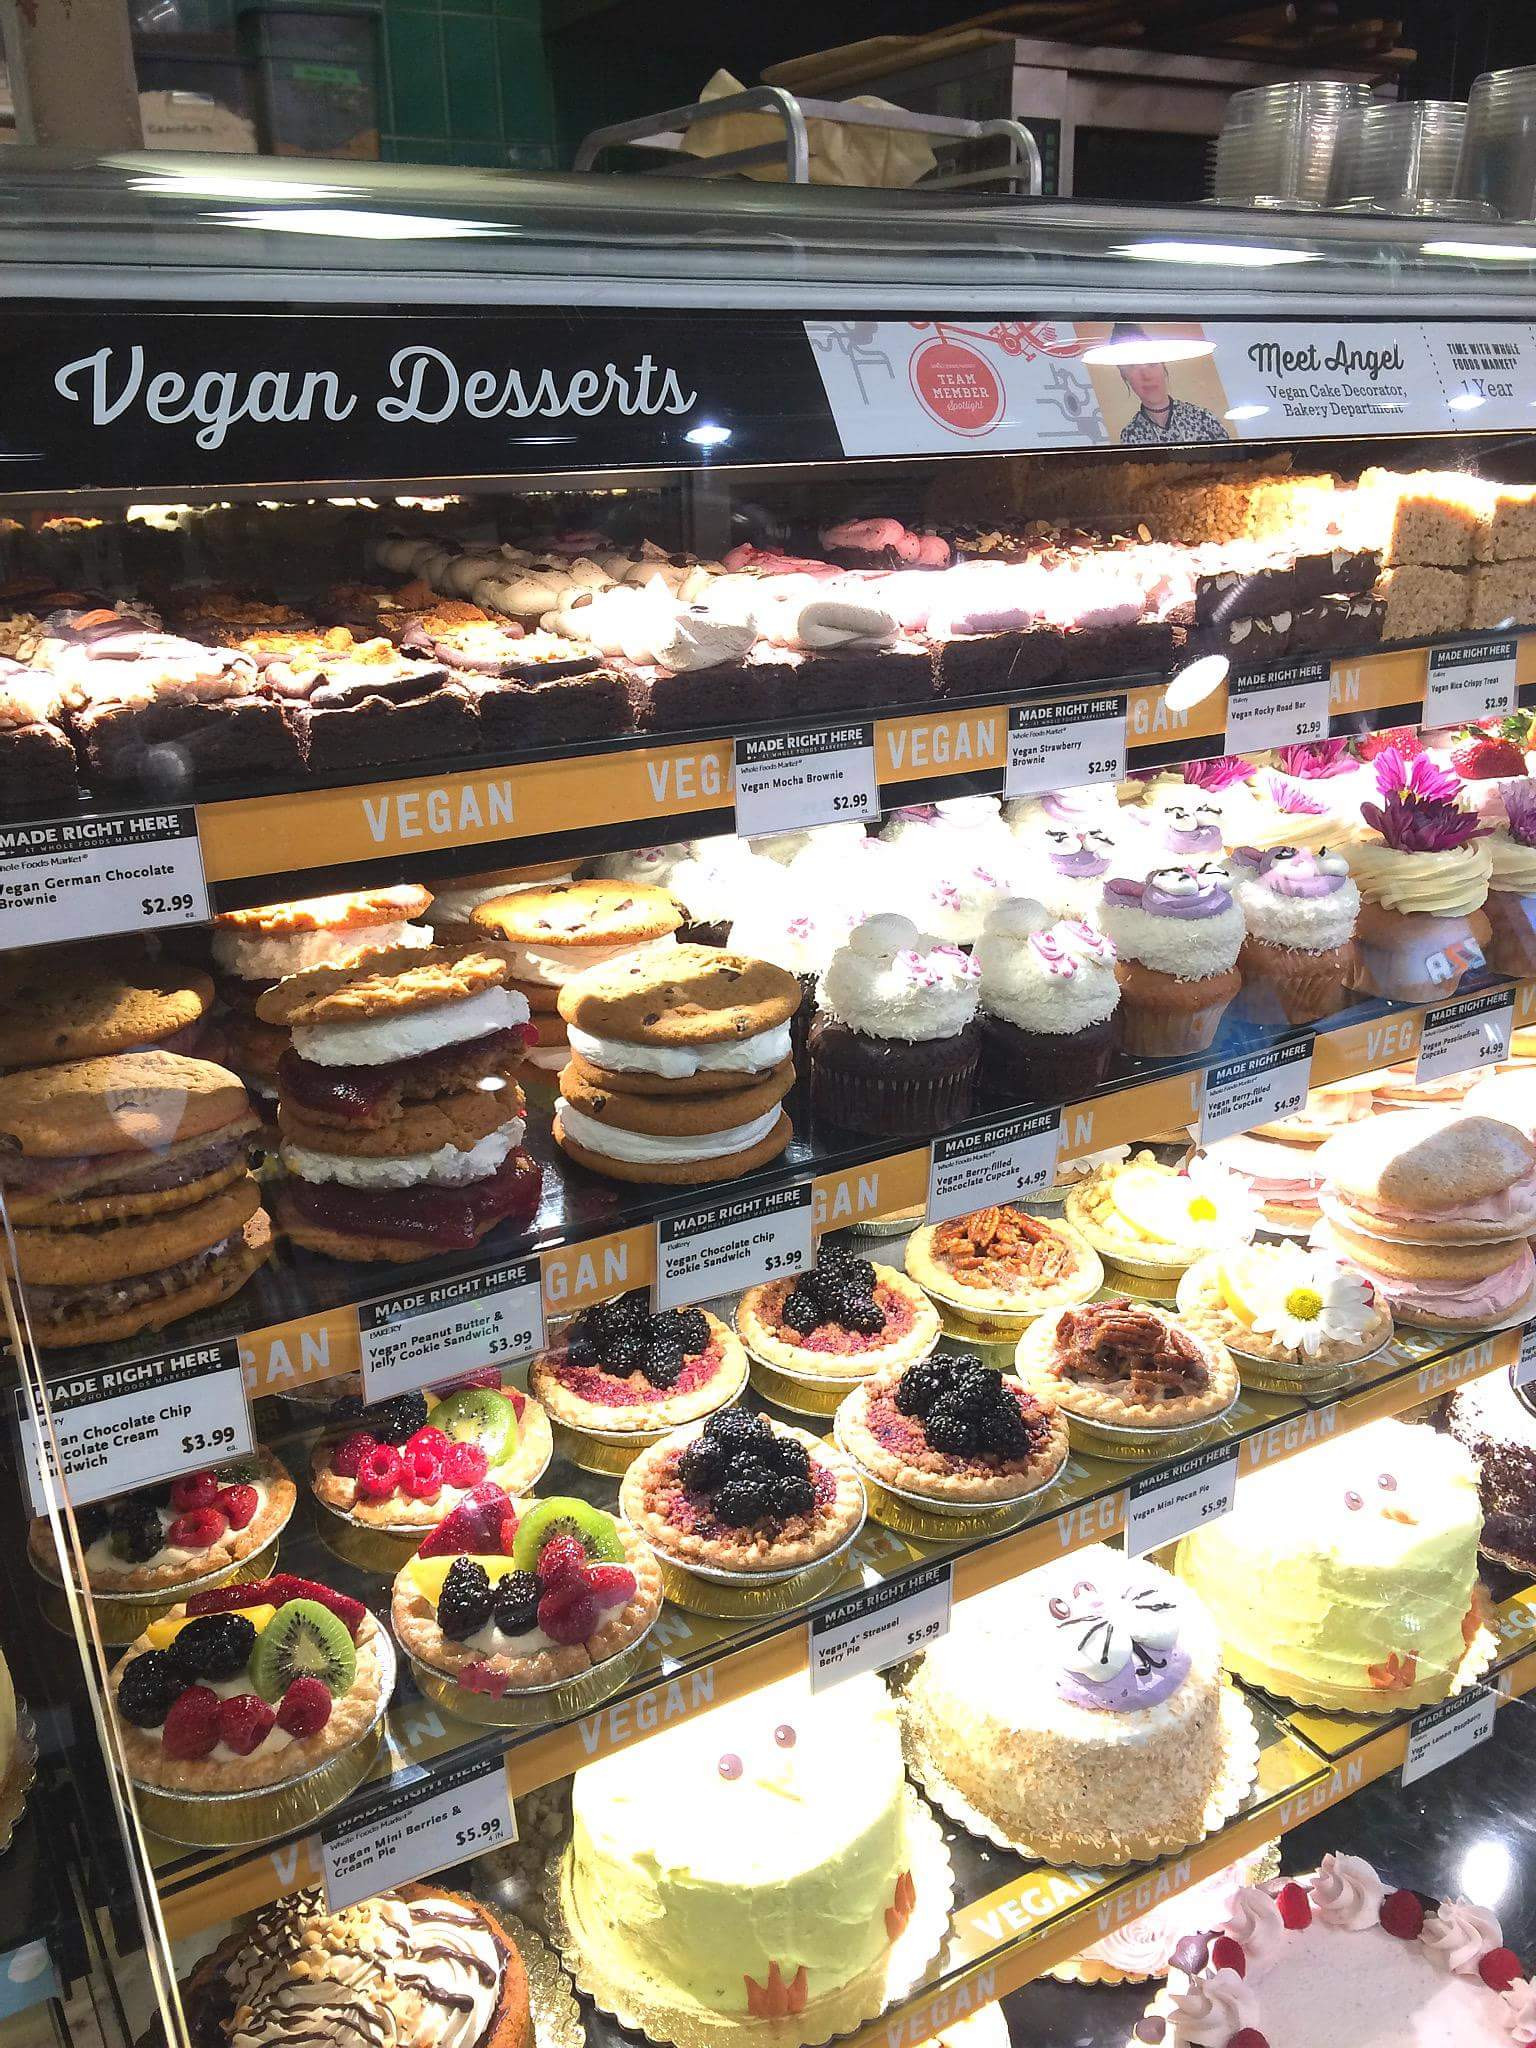 Vegan Desserts At Whole Foods  Whole Foods in San Diego has an entire section dedicated